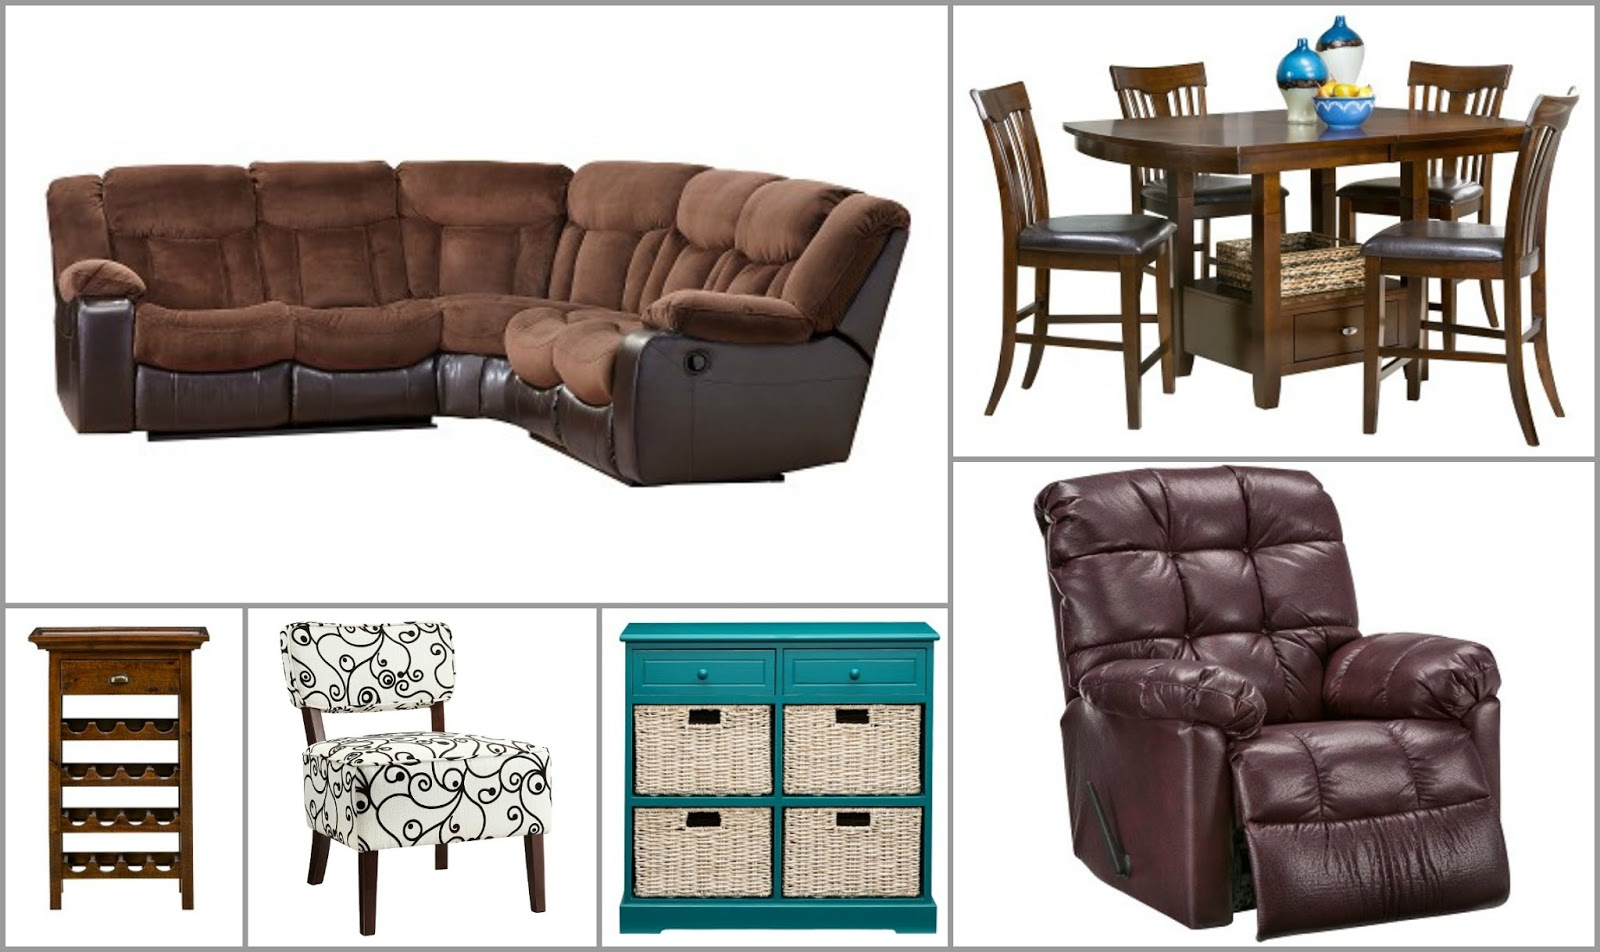 ... On The Different Types Of Furniture That We Have To Offer. You Are Sure  To Find Something That Fits Your Style Perfectly For Every Room In Your  House.